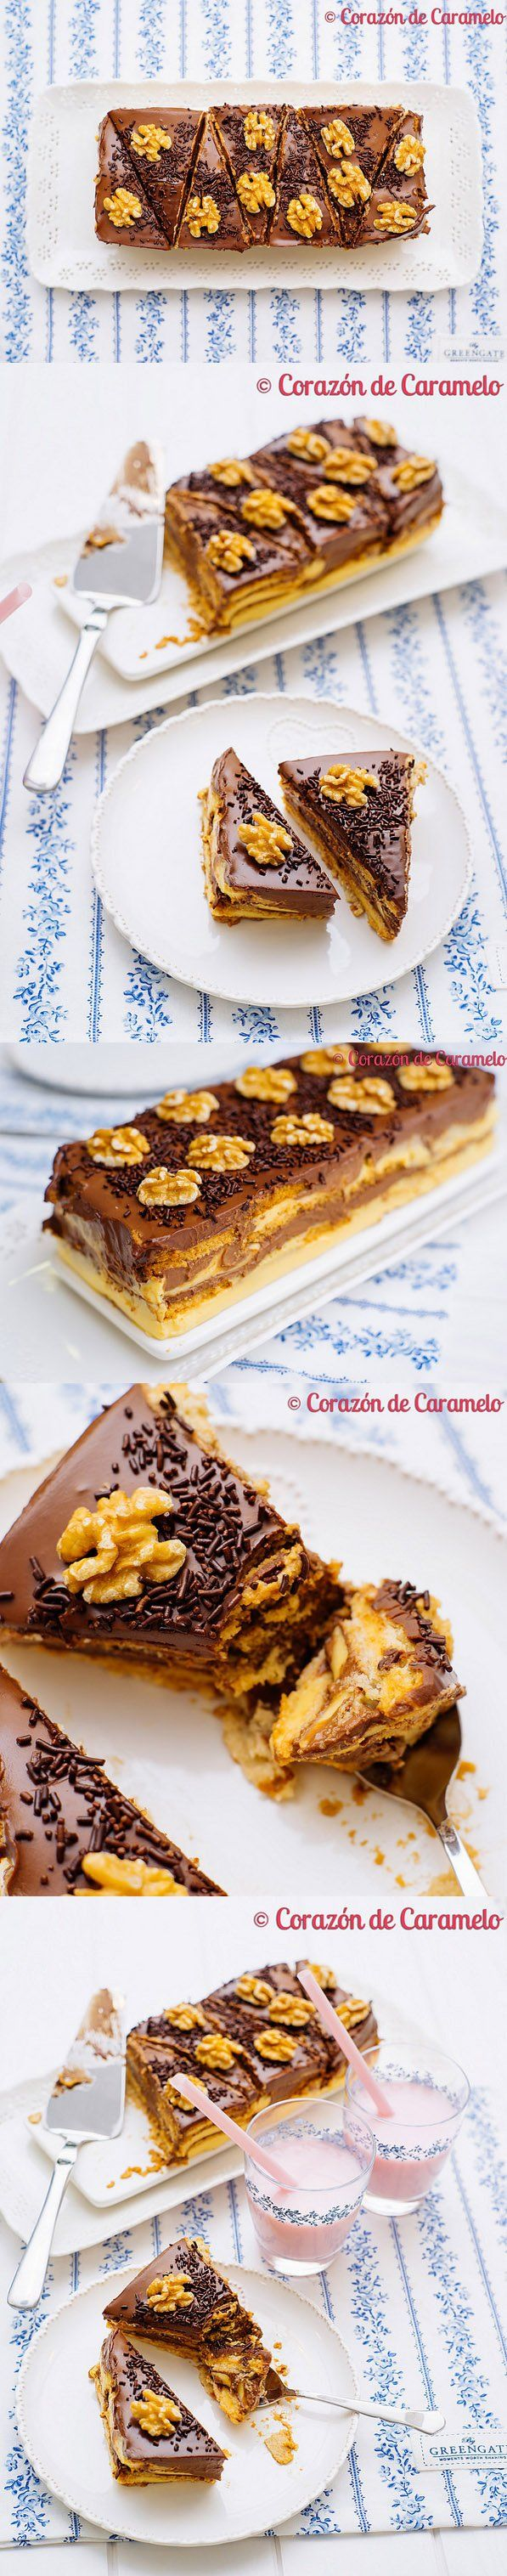 tarta, sin horno, chocolate, galletas, natillas, pastel, receta